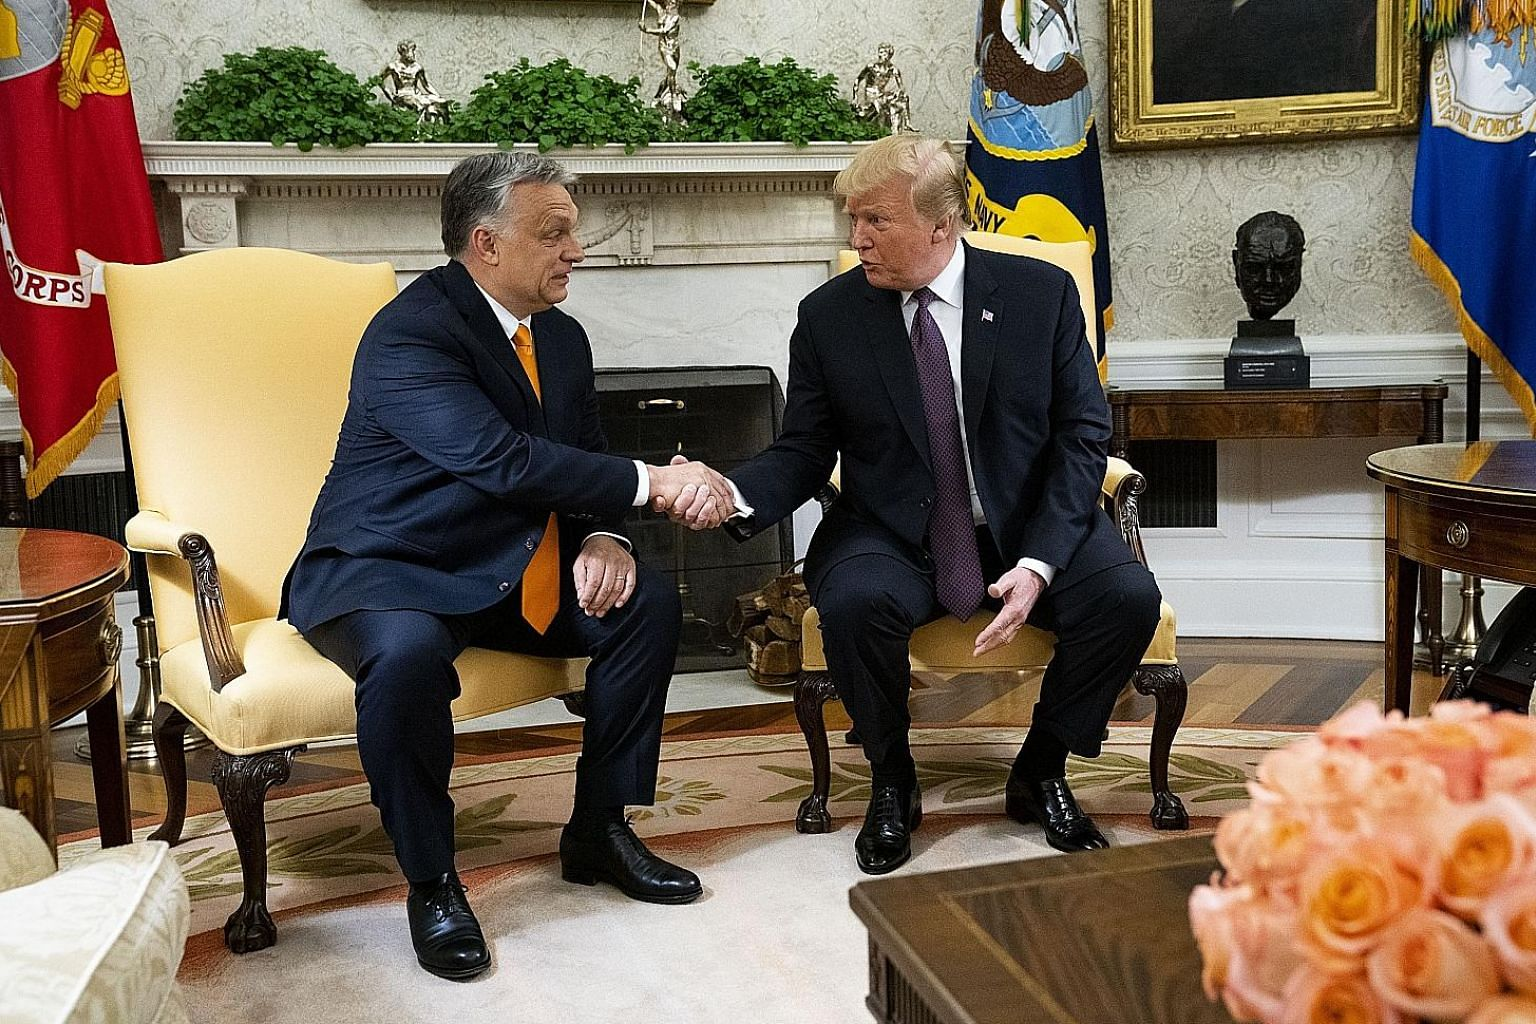 US President Donald Trump with Hungarian Prime Minister Viktor Orban at the White House on Monday. Critics in both the US and Europe slammed the meeting, but as leader of an EU member state, Mr Orban regularly meets other continental heads of states